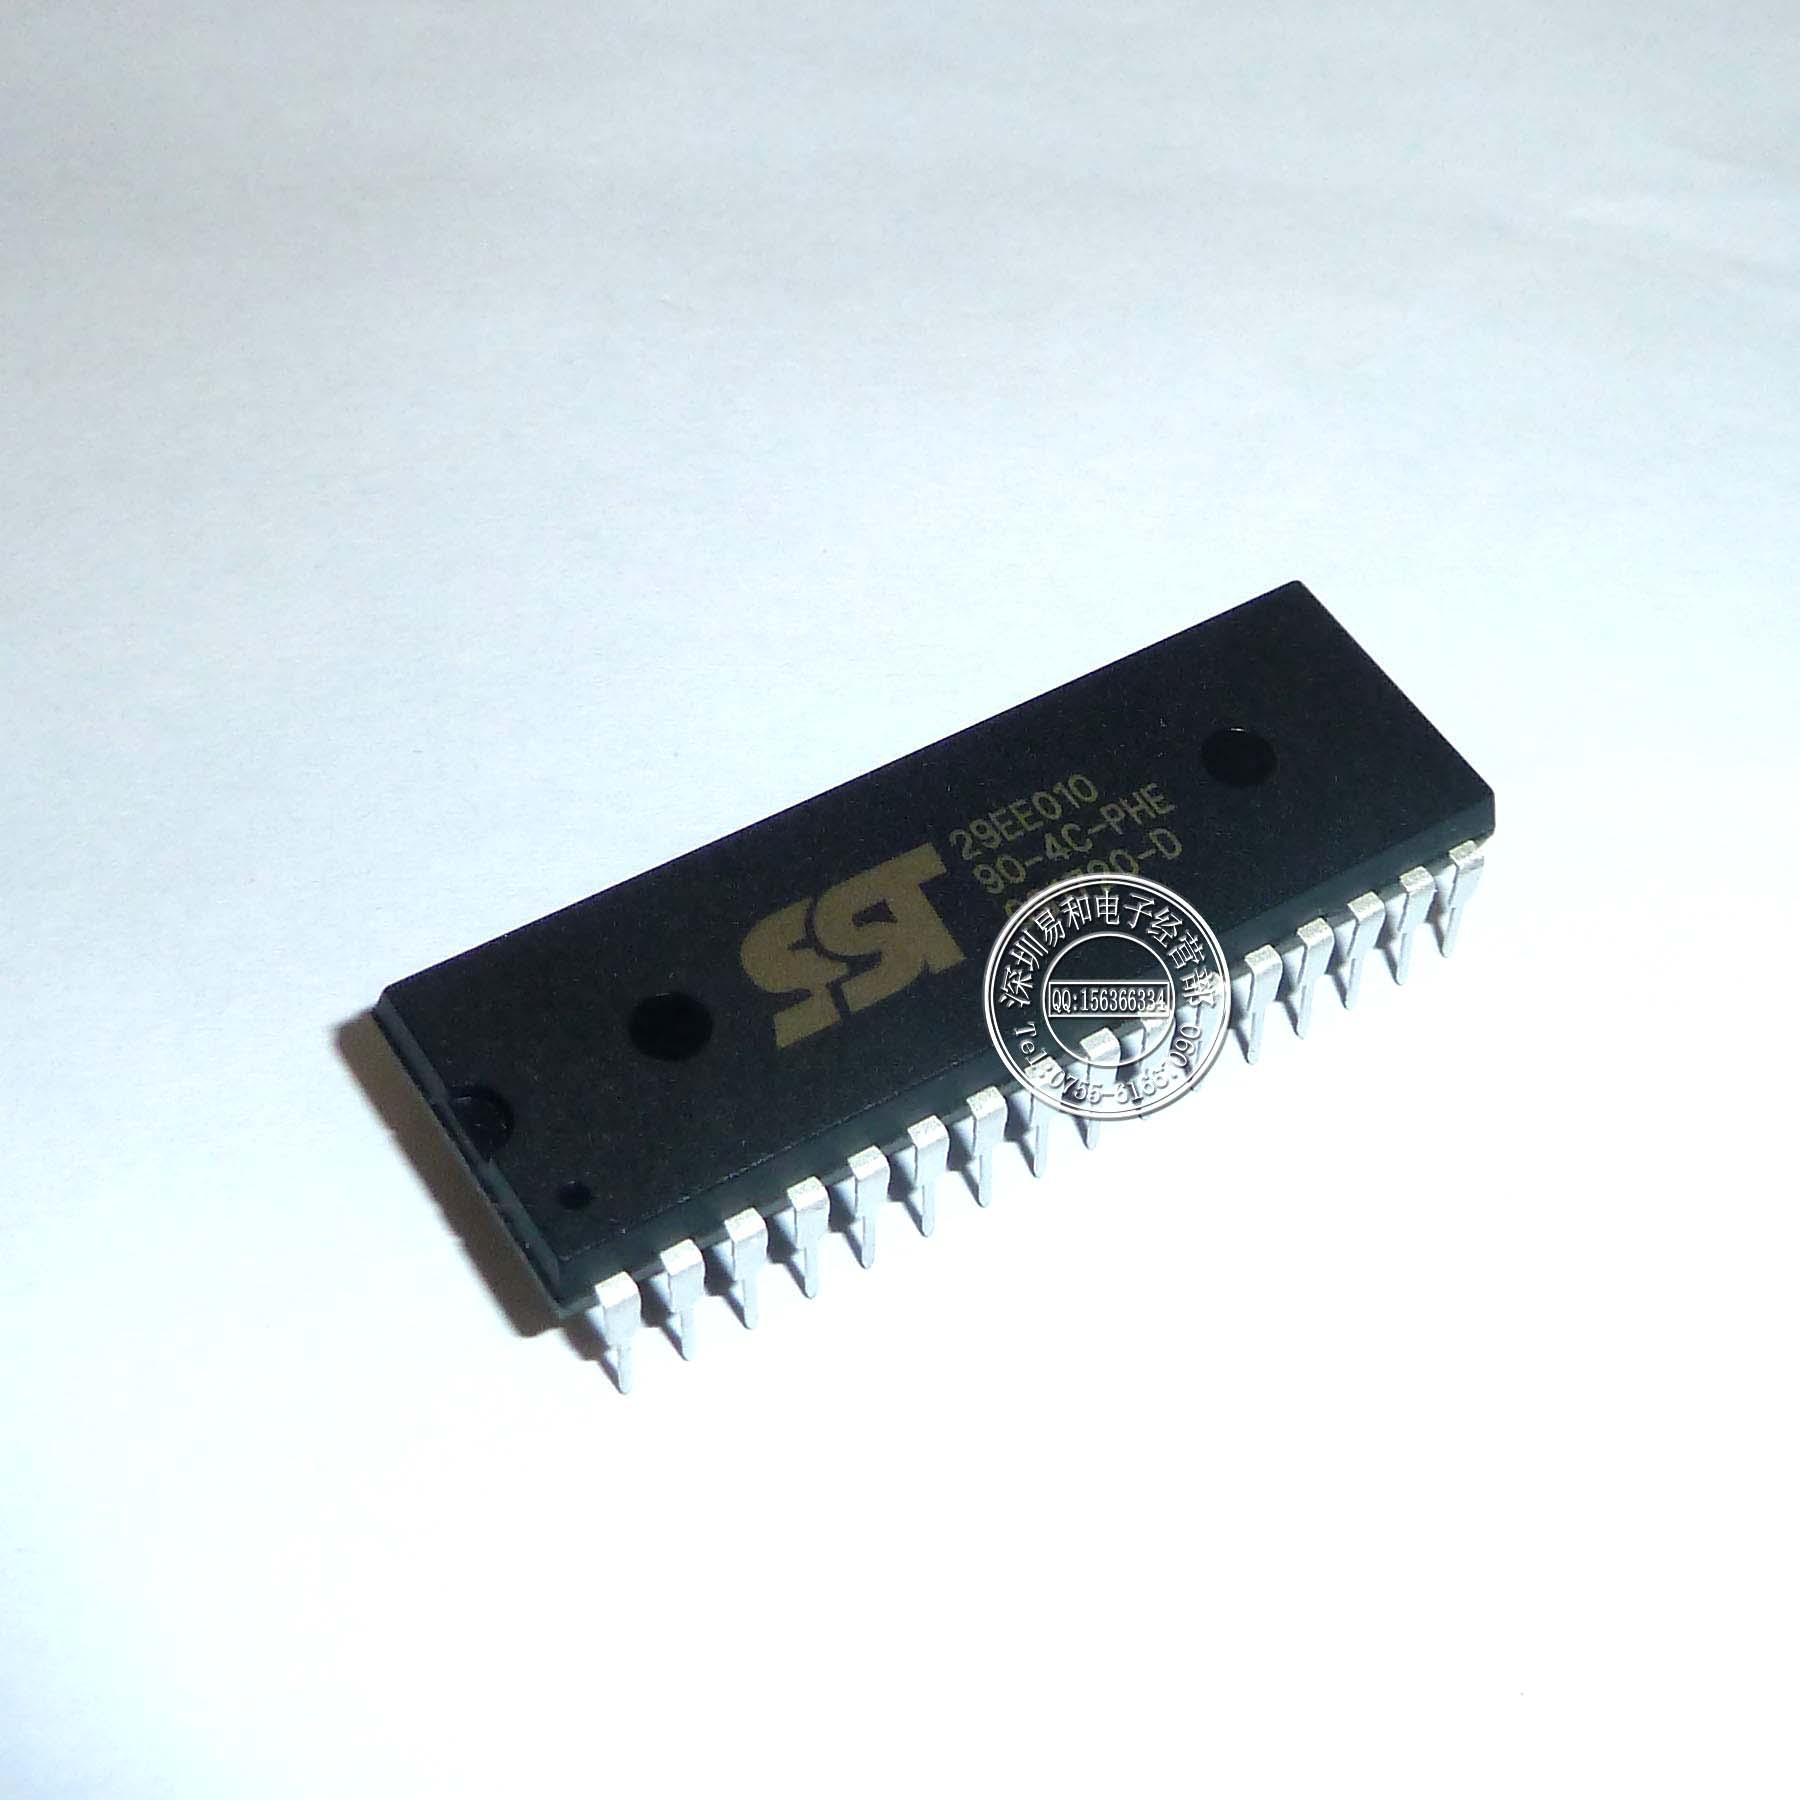 Cheap Integrated Circuit Sst29ee010 90 4c Find Get Quotations 10pcs 120 4i Ph 70 Phe